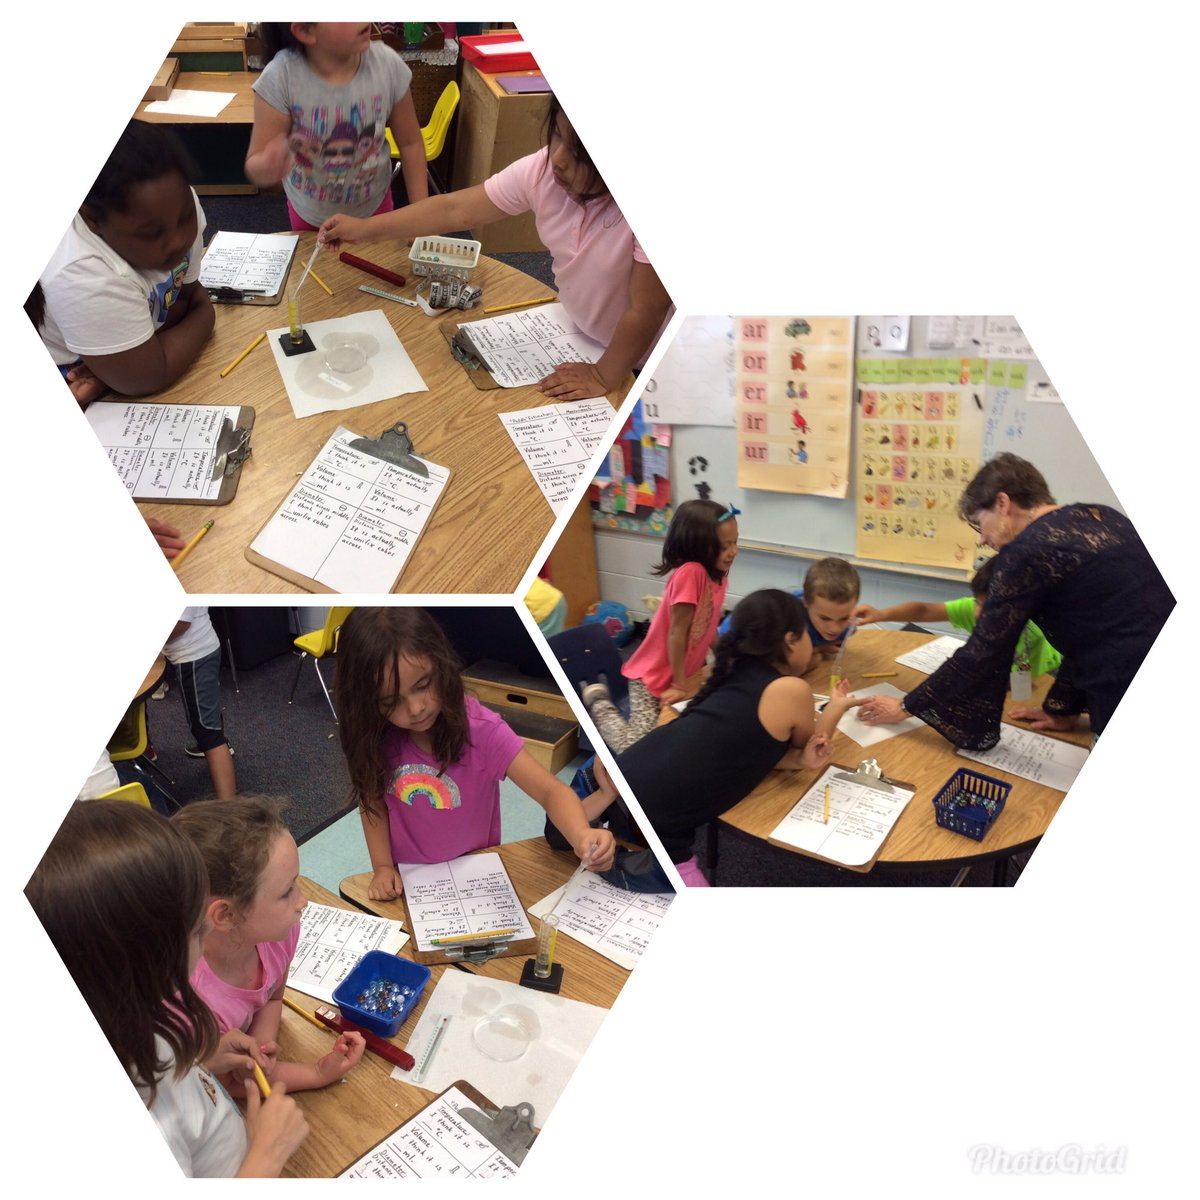 1st graders getting into estimating and measuring using scientific measurement tools <a target='_blank' href='http://twitter.com/CampbellOutside'>@CampbellOutside</a> <a target='_blank' href='http://twitter.com/CampbellAPS'>@CampbellAPS</a> <a target='_blank' href='http://twitter.com/CampbellCounts'>@CampbellCounts</a> <a target='_blank' href='http://twitter.com/APSscience'>@APSscience</a> <a target='_blank' href='https://t.co/XiomwVp7Yk'>https://t.co/XiomwVp7Yk</a>